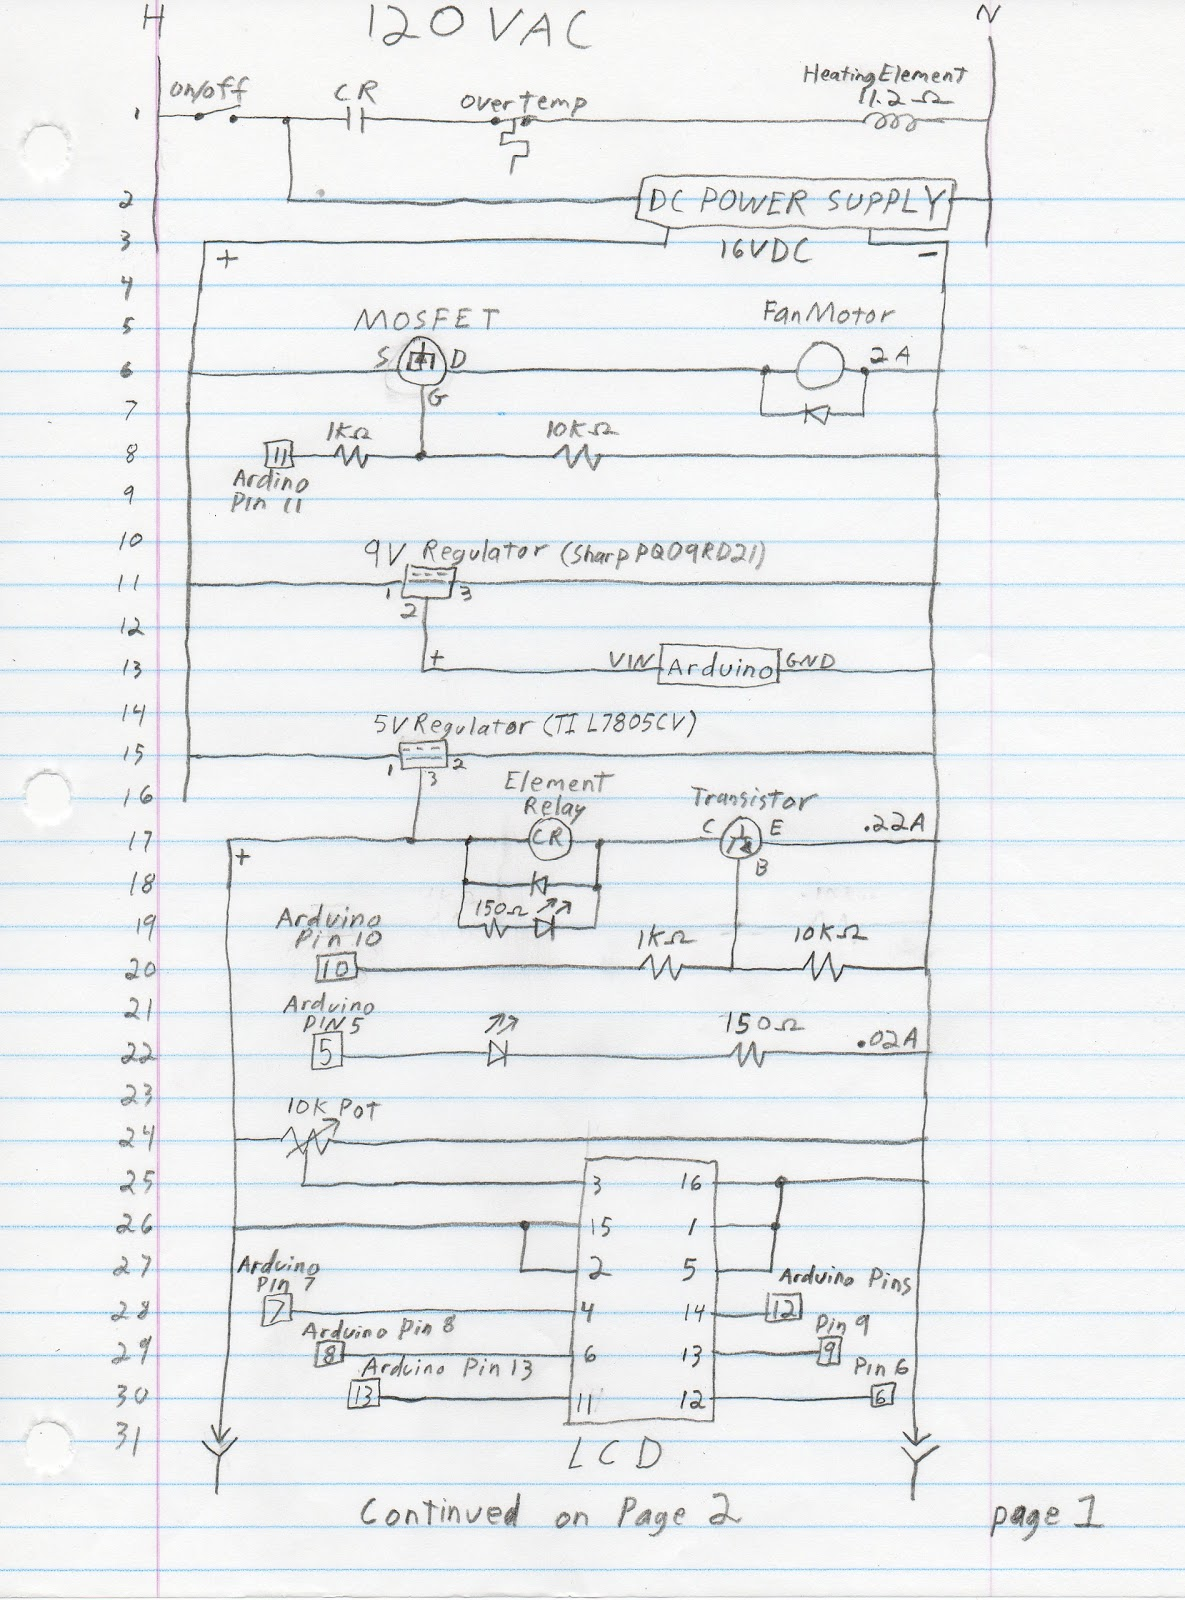 ladder schematic diagram change html with New Wiring on BidirMotor furthermore New Wiring furthermore Rock Life Cycle Diagram furthermore Lockout Relay Wiring Diagram as well Drive Thru Layout.